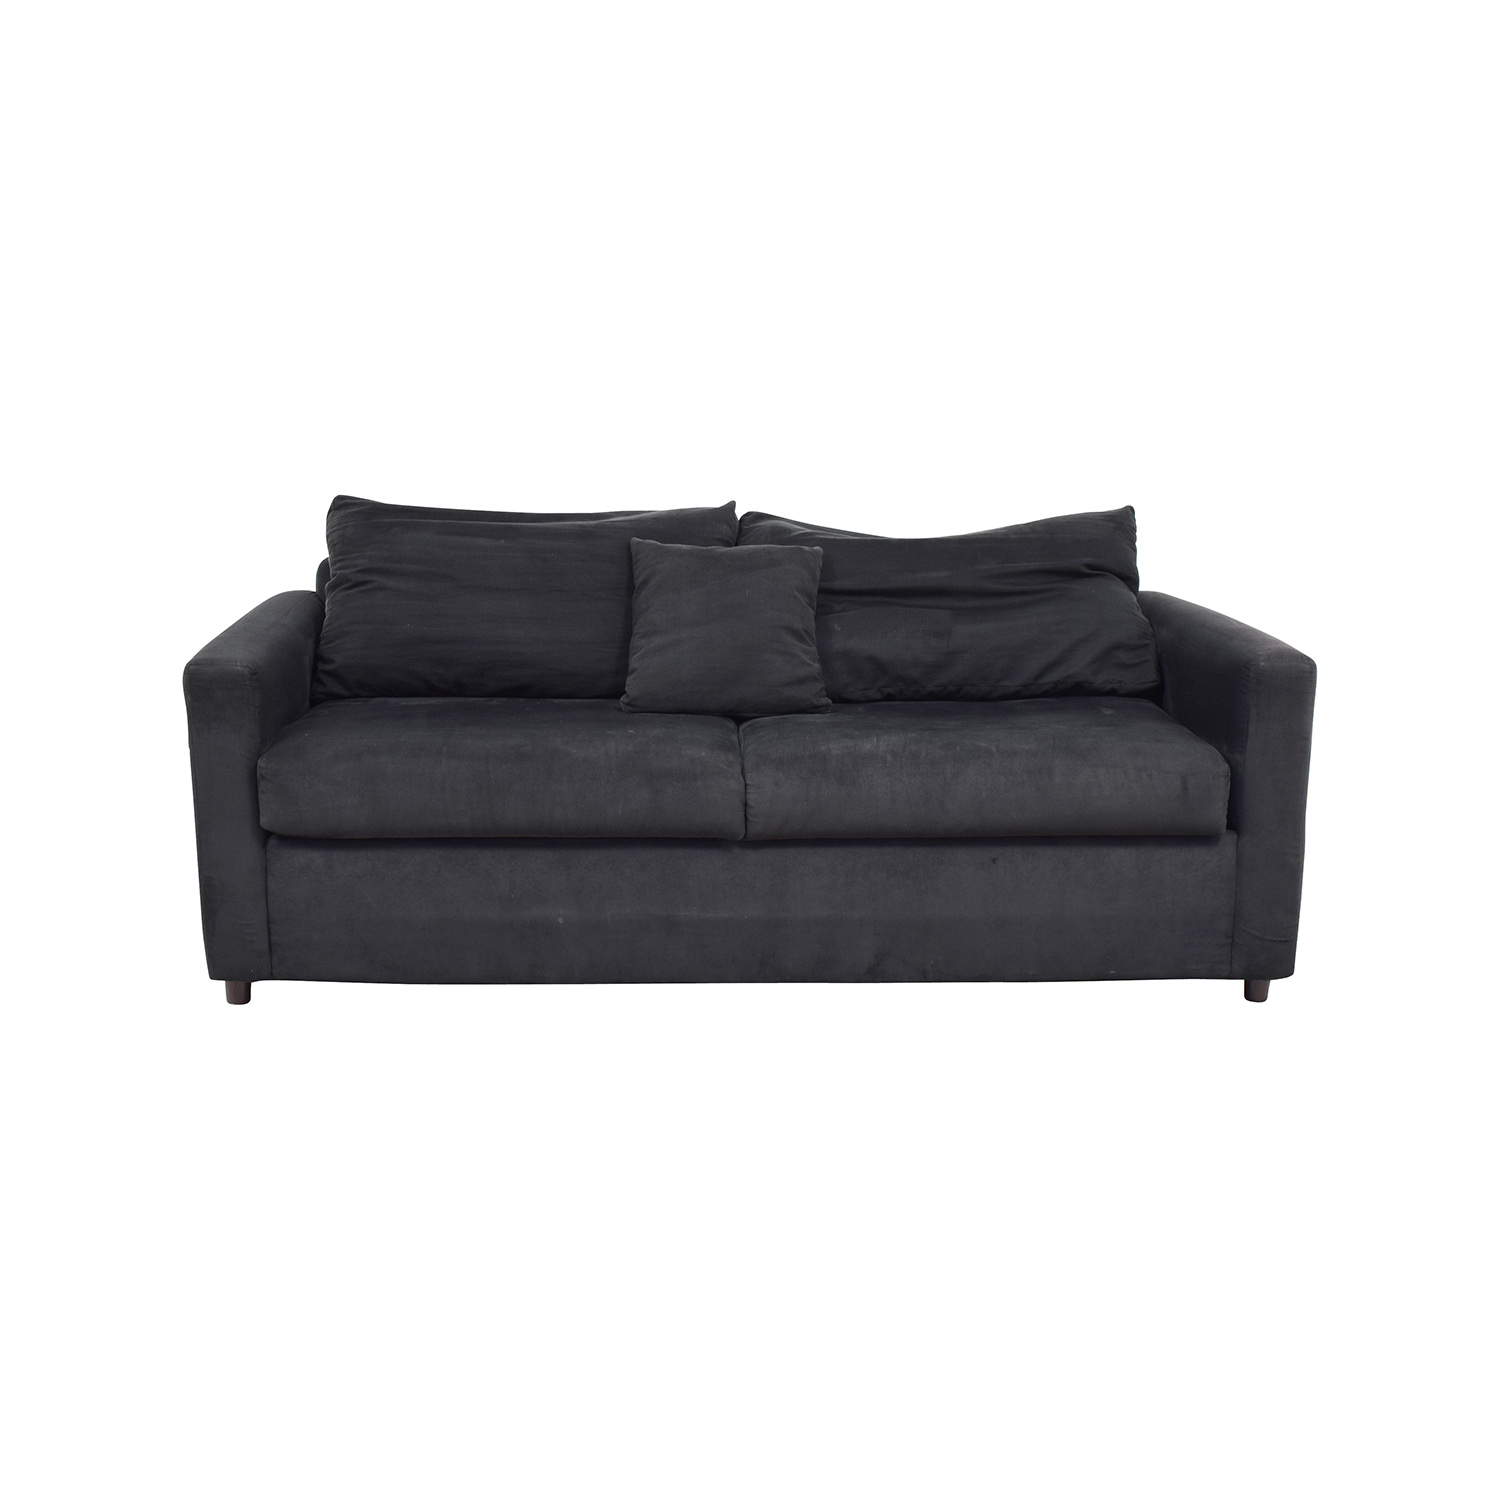 reclining leather sofa 47 macy s macy s lizbeth gray button tufted sofa 10445